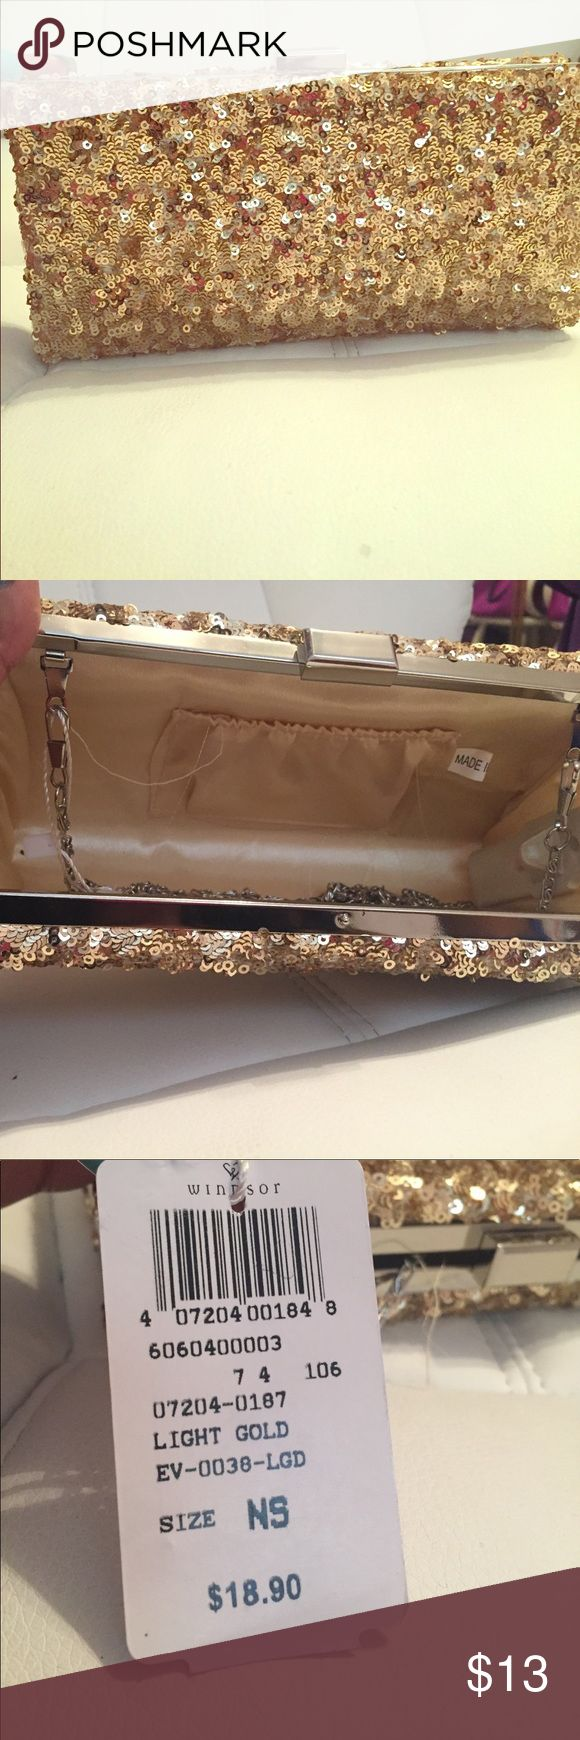 Gold sparkly clutch Never used. Tags on. From Windsor. Holds a lot but stylish. Windsor Bags Clutches & Wristlets